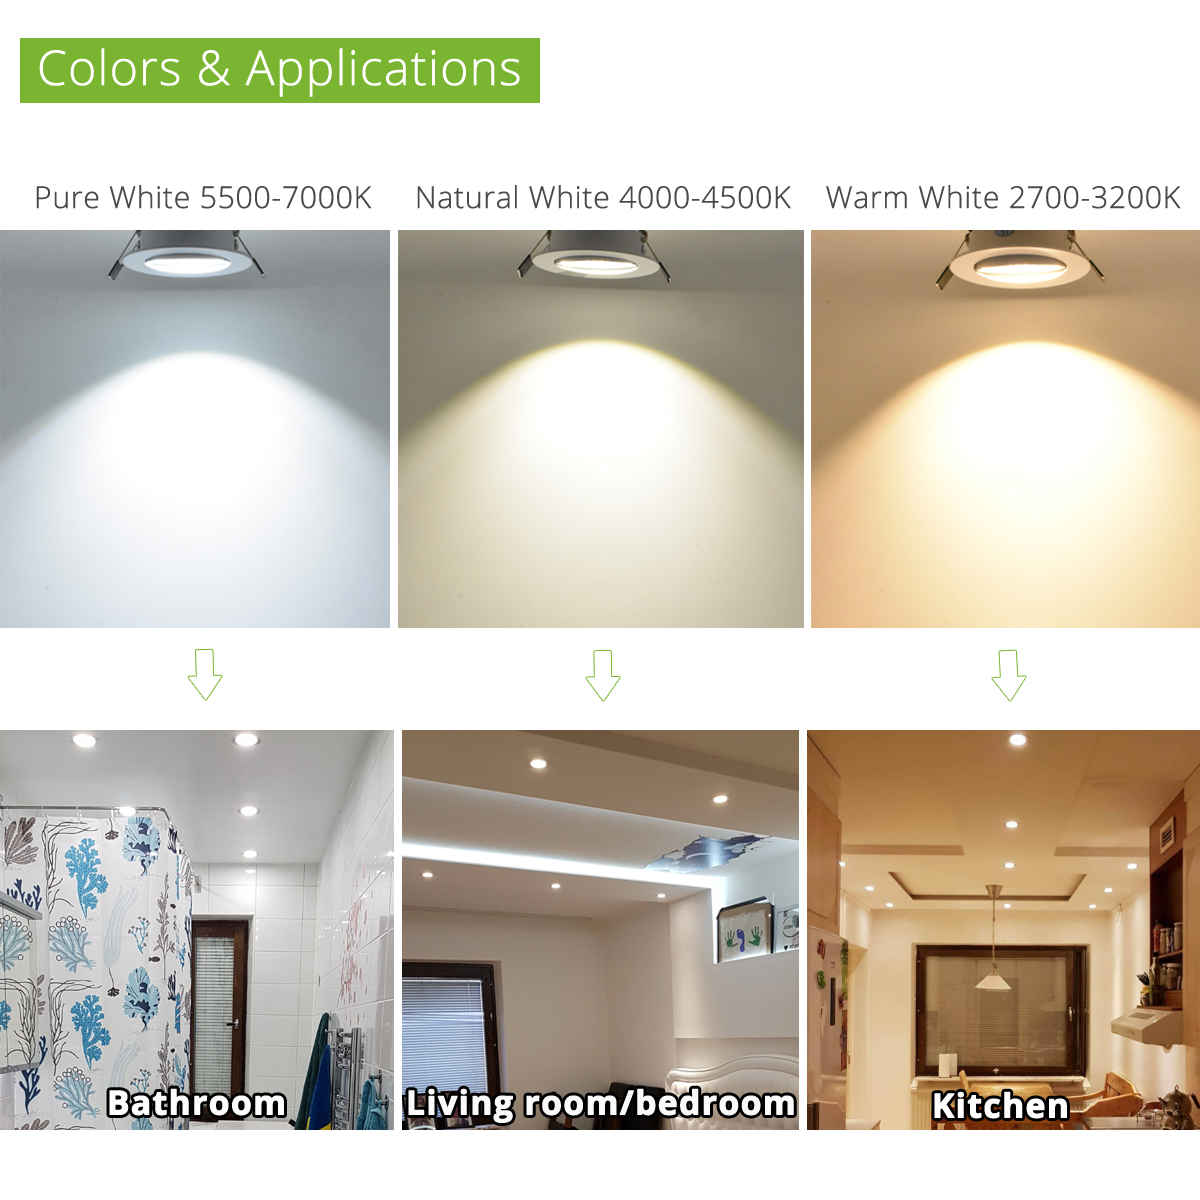 50 st / lot Ny 2015 3W 4W 5W Dimmbar led downlight AC 120V 220V - Inomhusbelysning - Foto 4